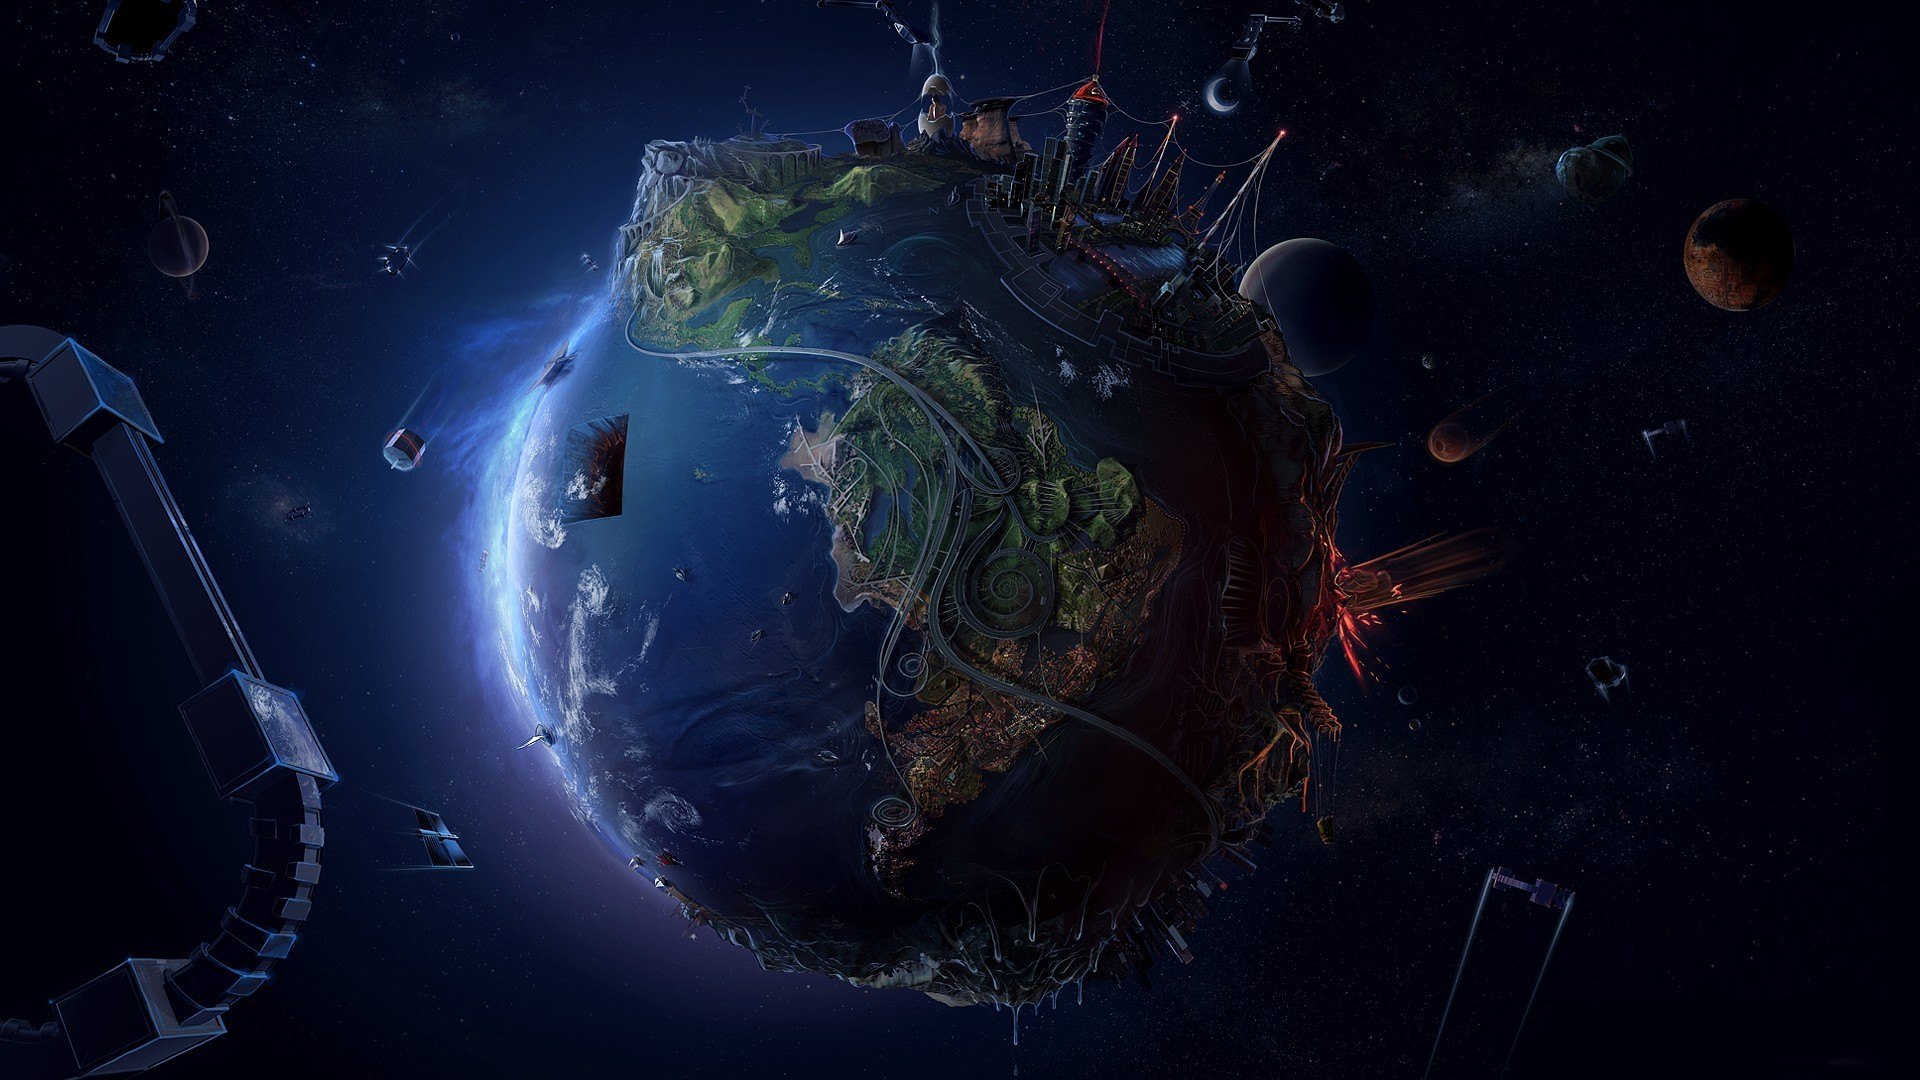 1920 x 1080. Our small world.   Space Wallpaper   Pinterest